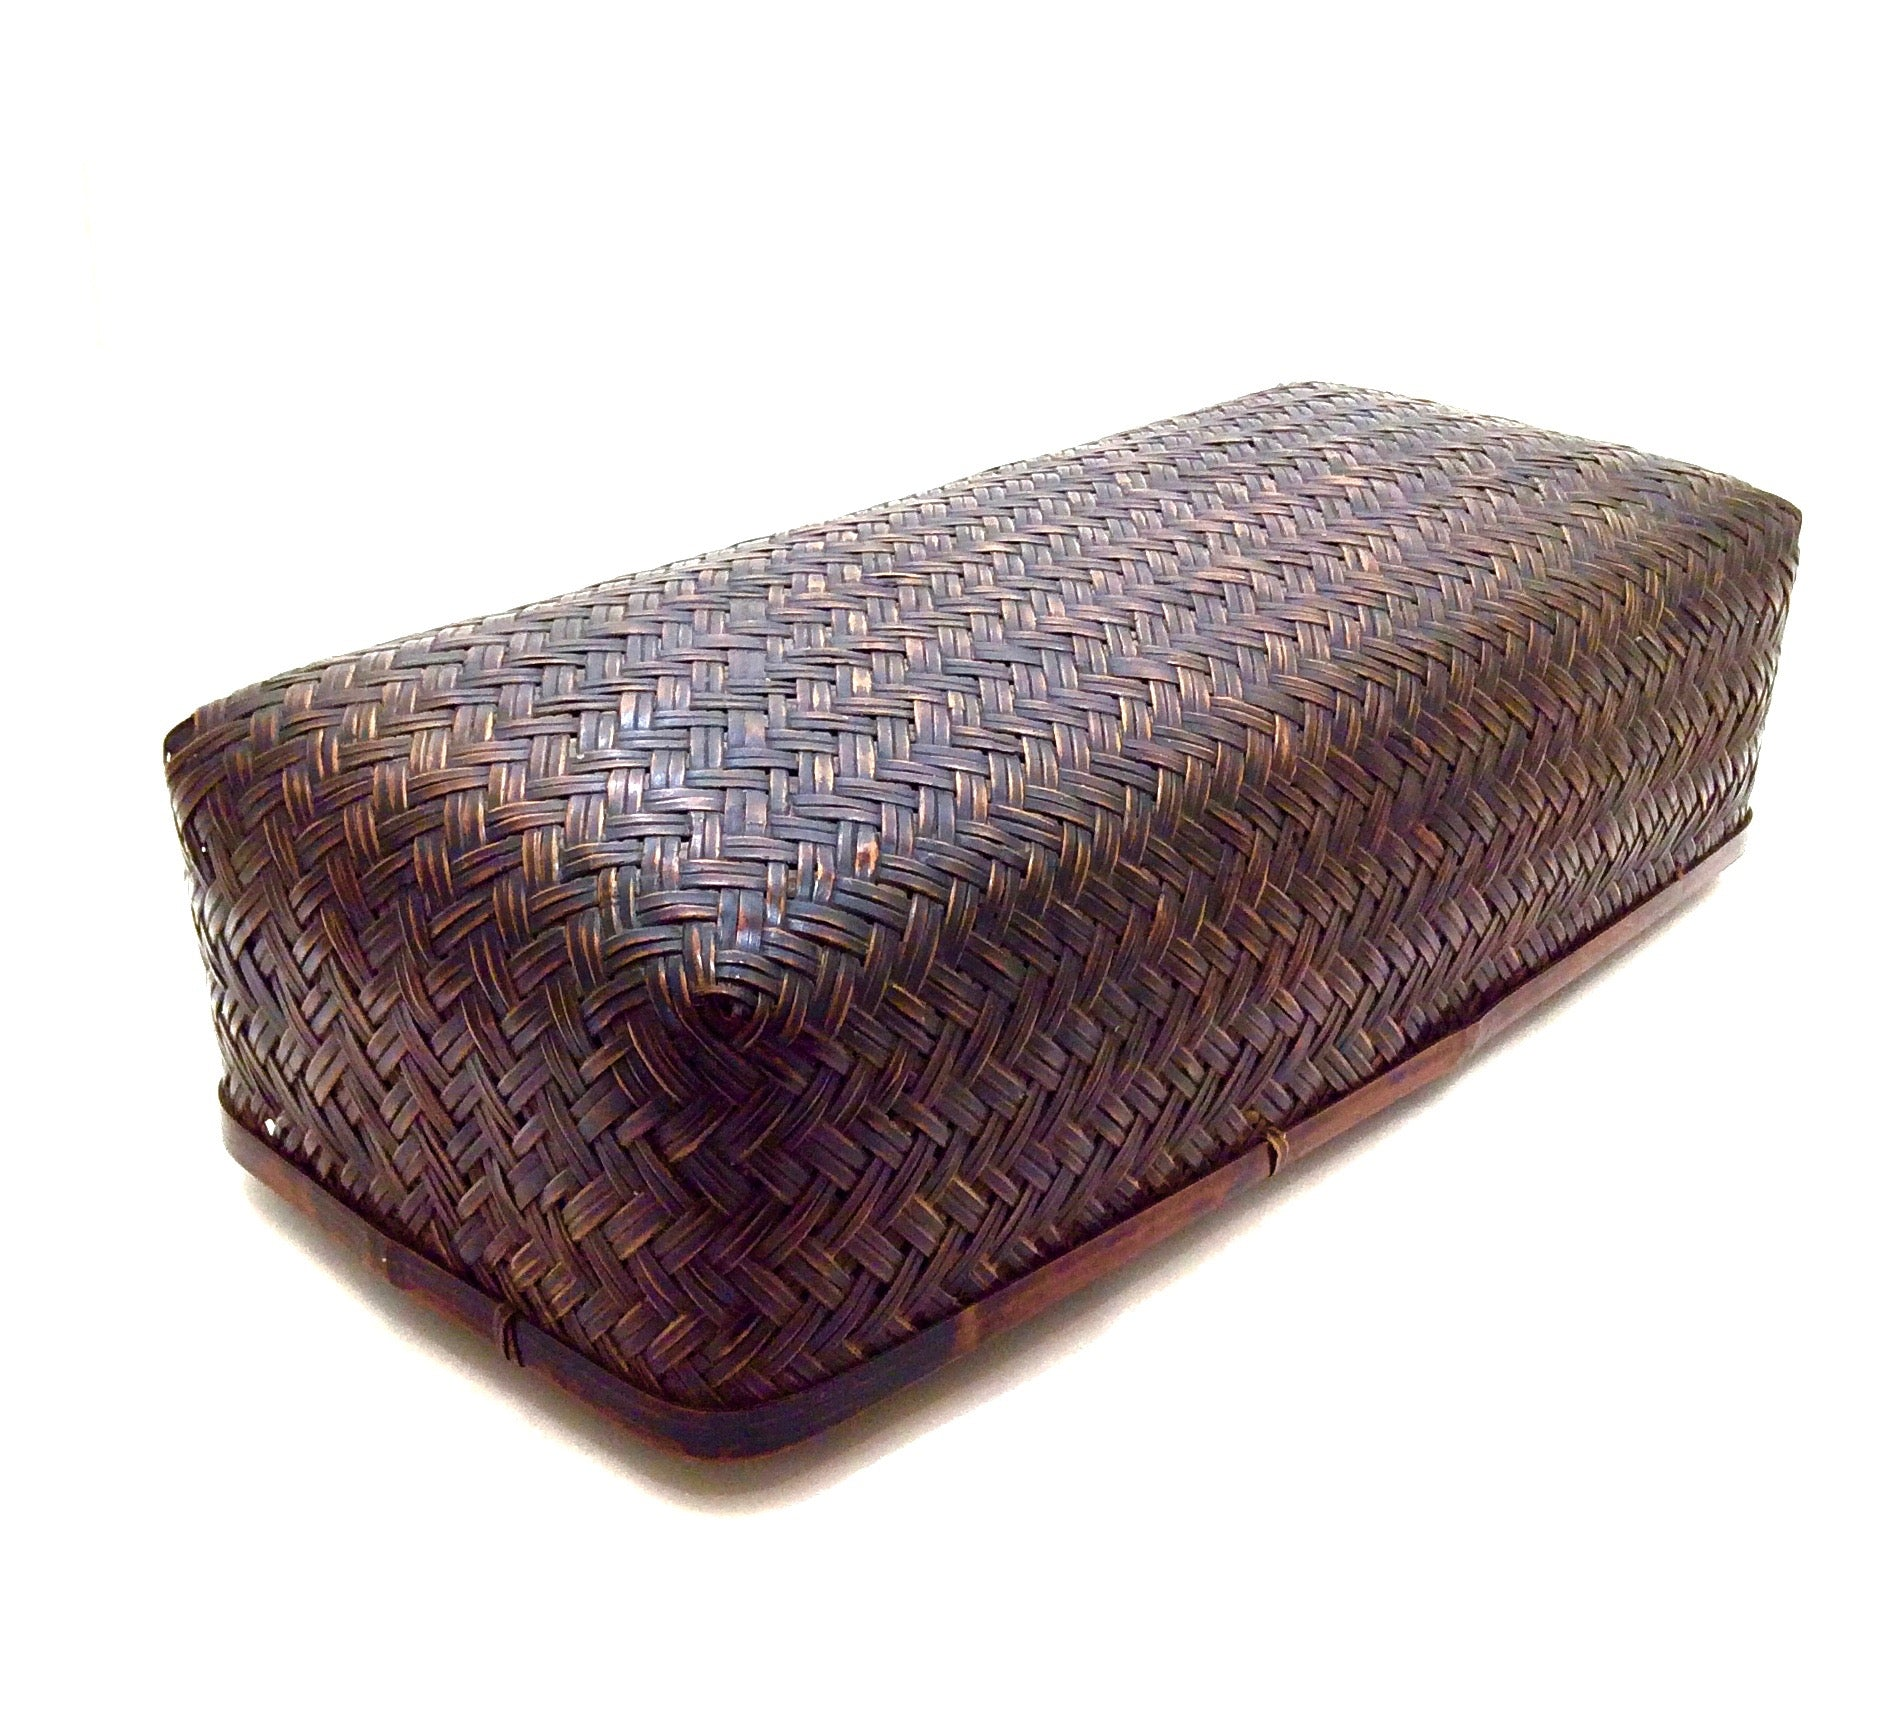 Vintage Japanese Pillow Form Basket | Rare Bamboo-Woven Headrest | Rare Lidded Basket